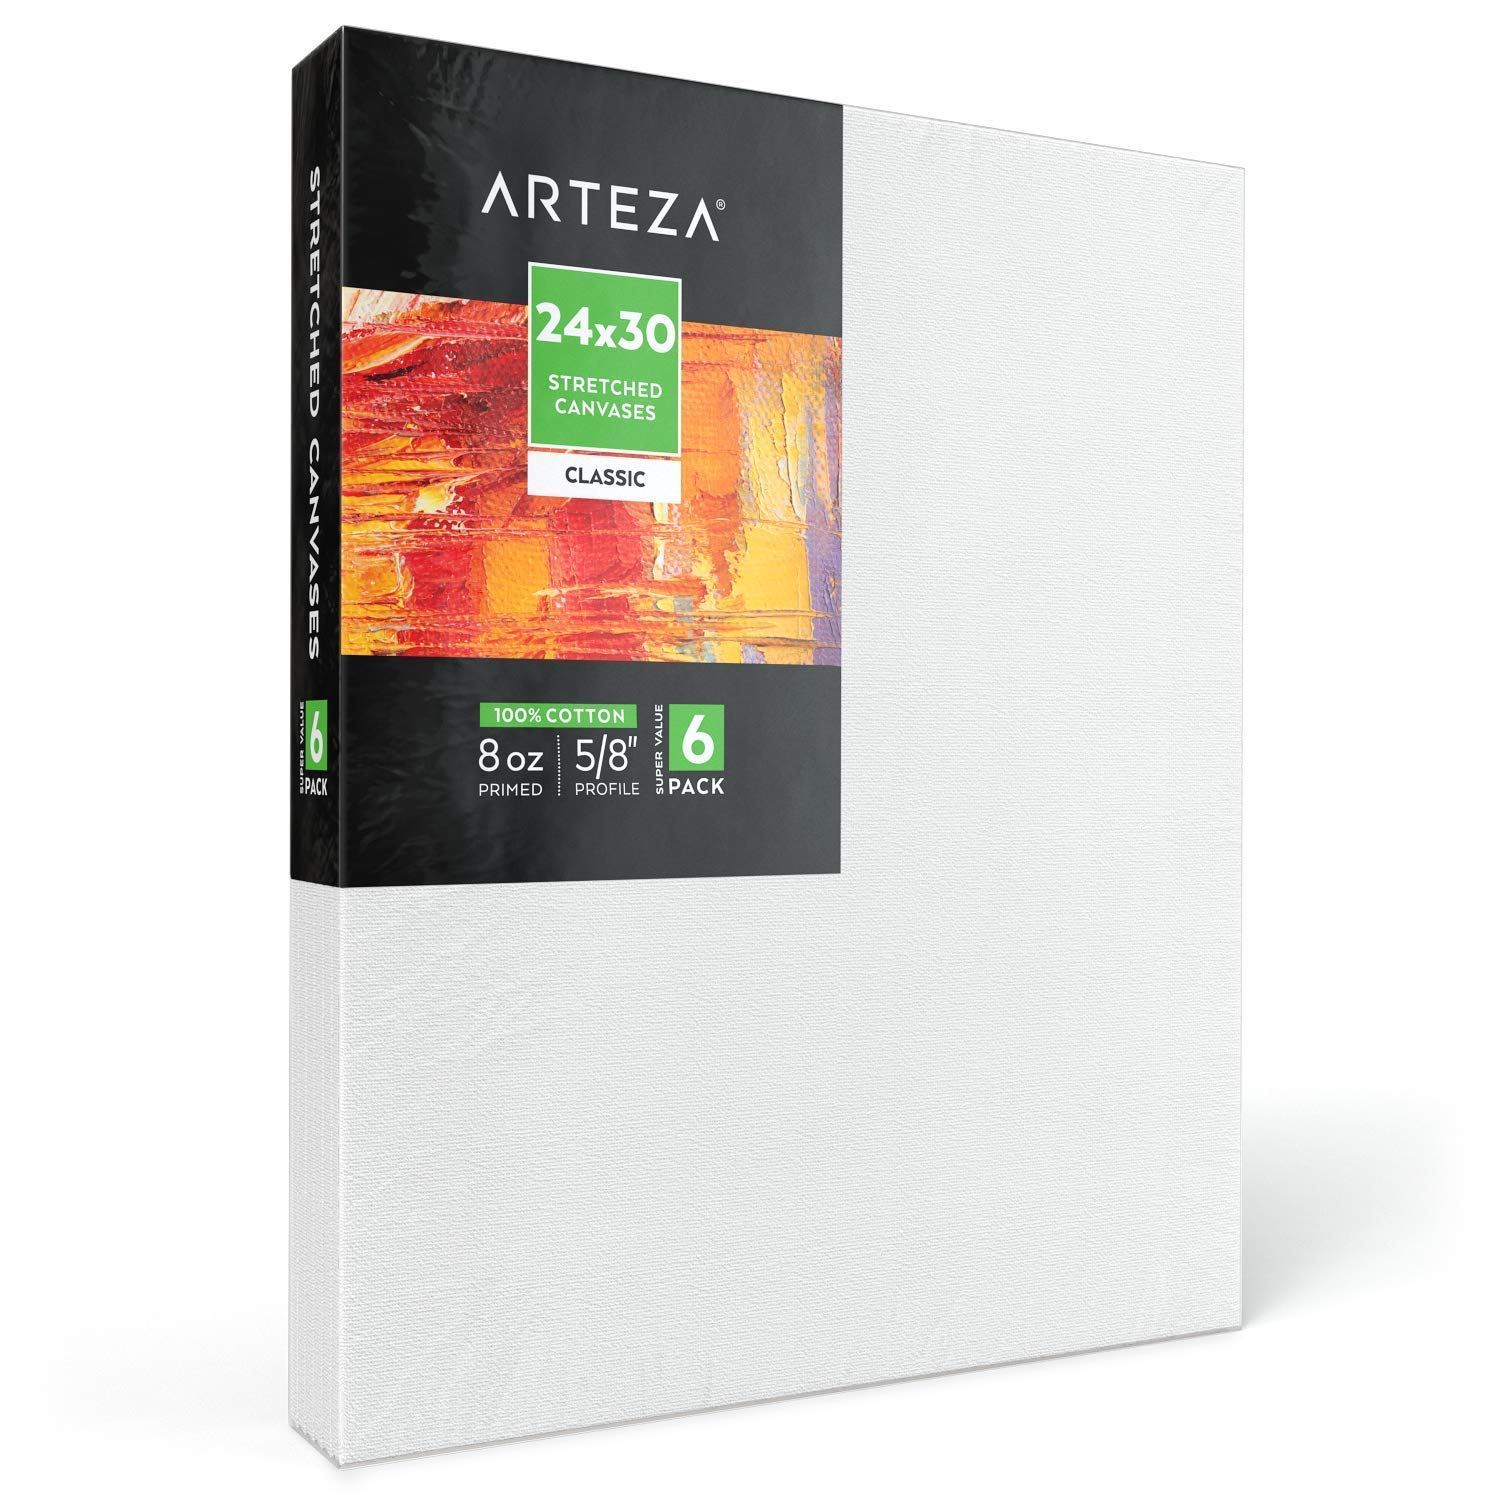 """Arteza 24x30"""" Stretched White Blank Canvas, Bulk Pack of 6, Primed, 100% Cotton for Painting, Acrylic Pouring, Oil Paint & Wet Art Media, Canvases for Professional Artist, Hobby Painters & Beginner"""